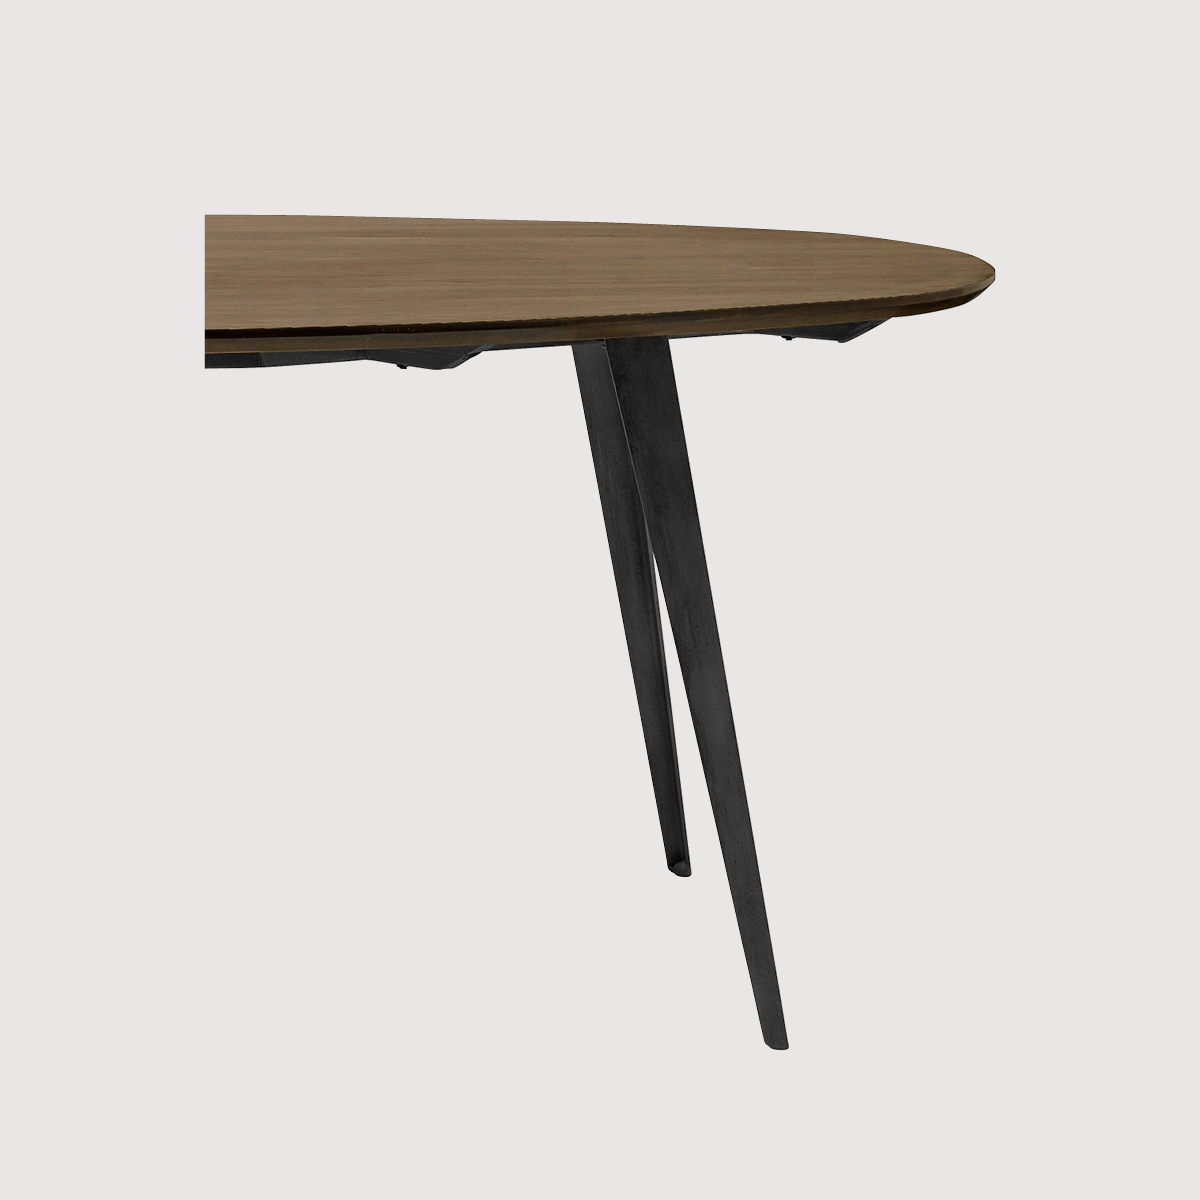 Lula Oval Dining Table – two finishes gallery image